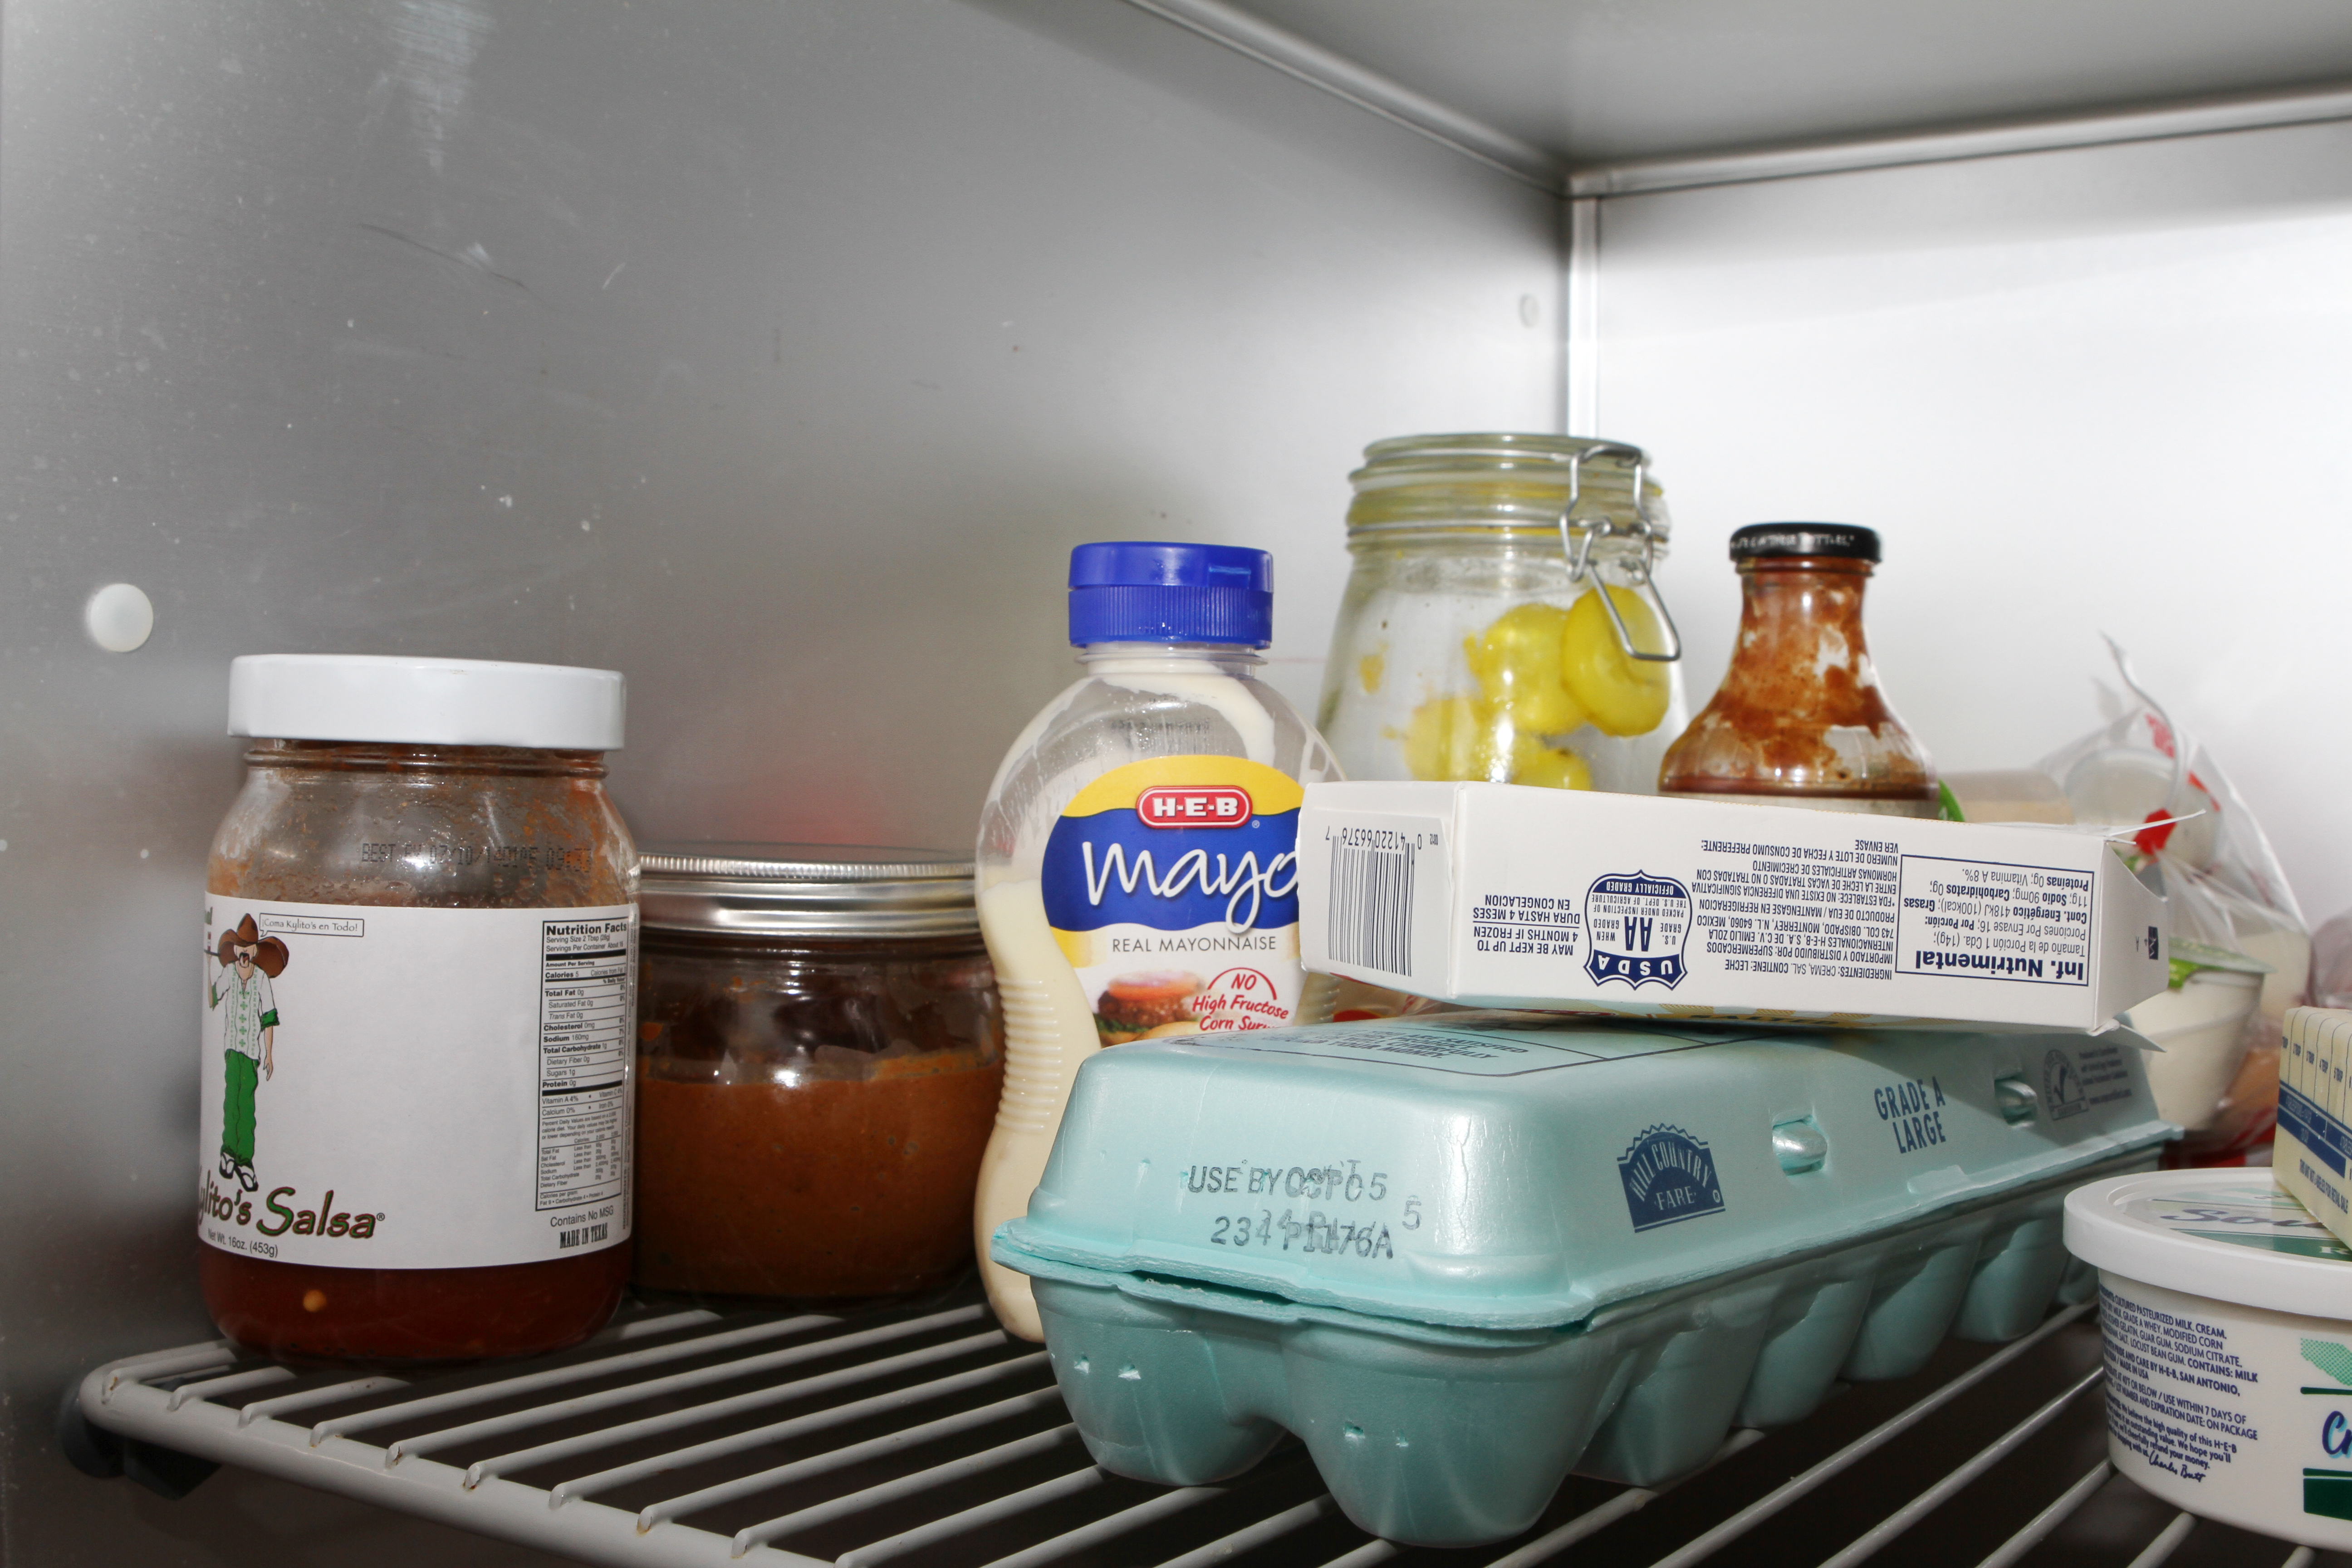 The Inside of the Fridge_GroceryPriceWatch